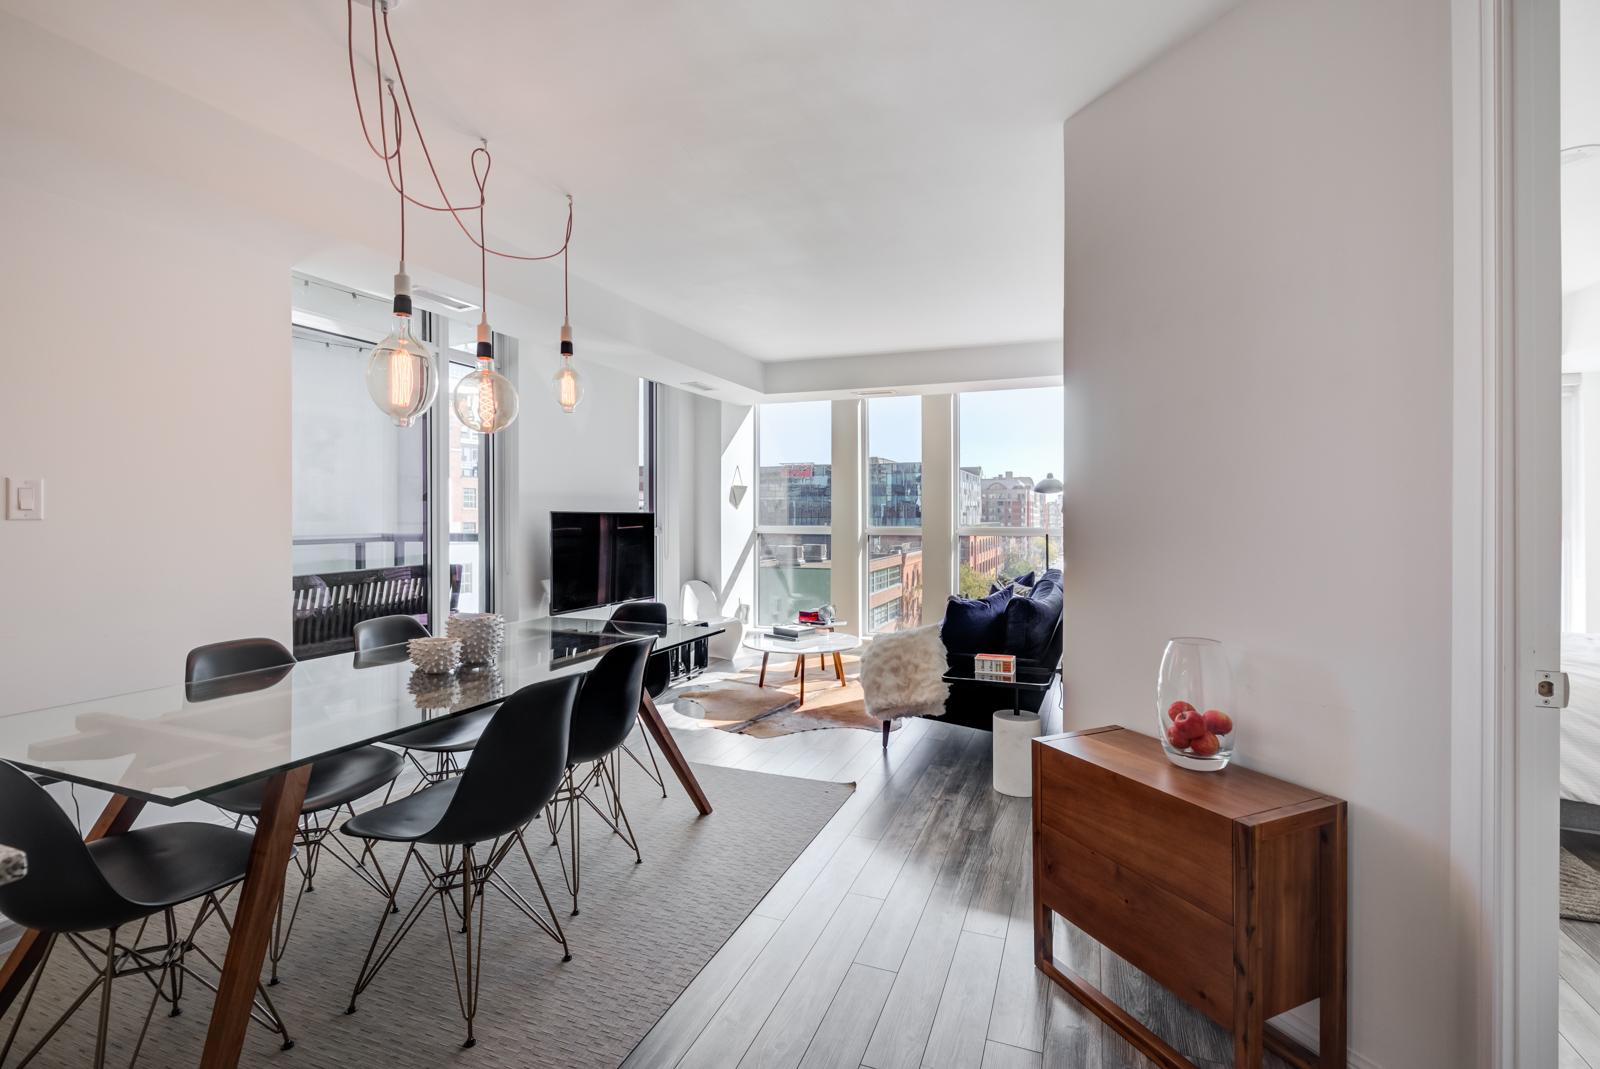 Chic pendant light-bulbs hanging above dining table of 400 Adelaide St E Unit 704 condos in Moss Park.